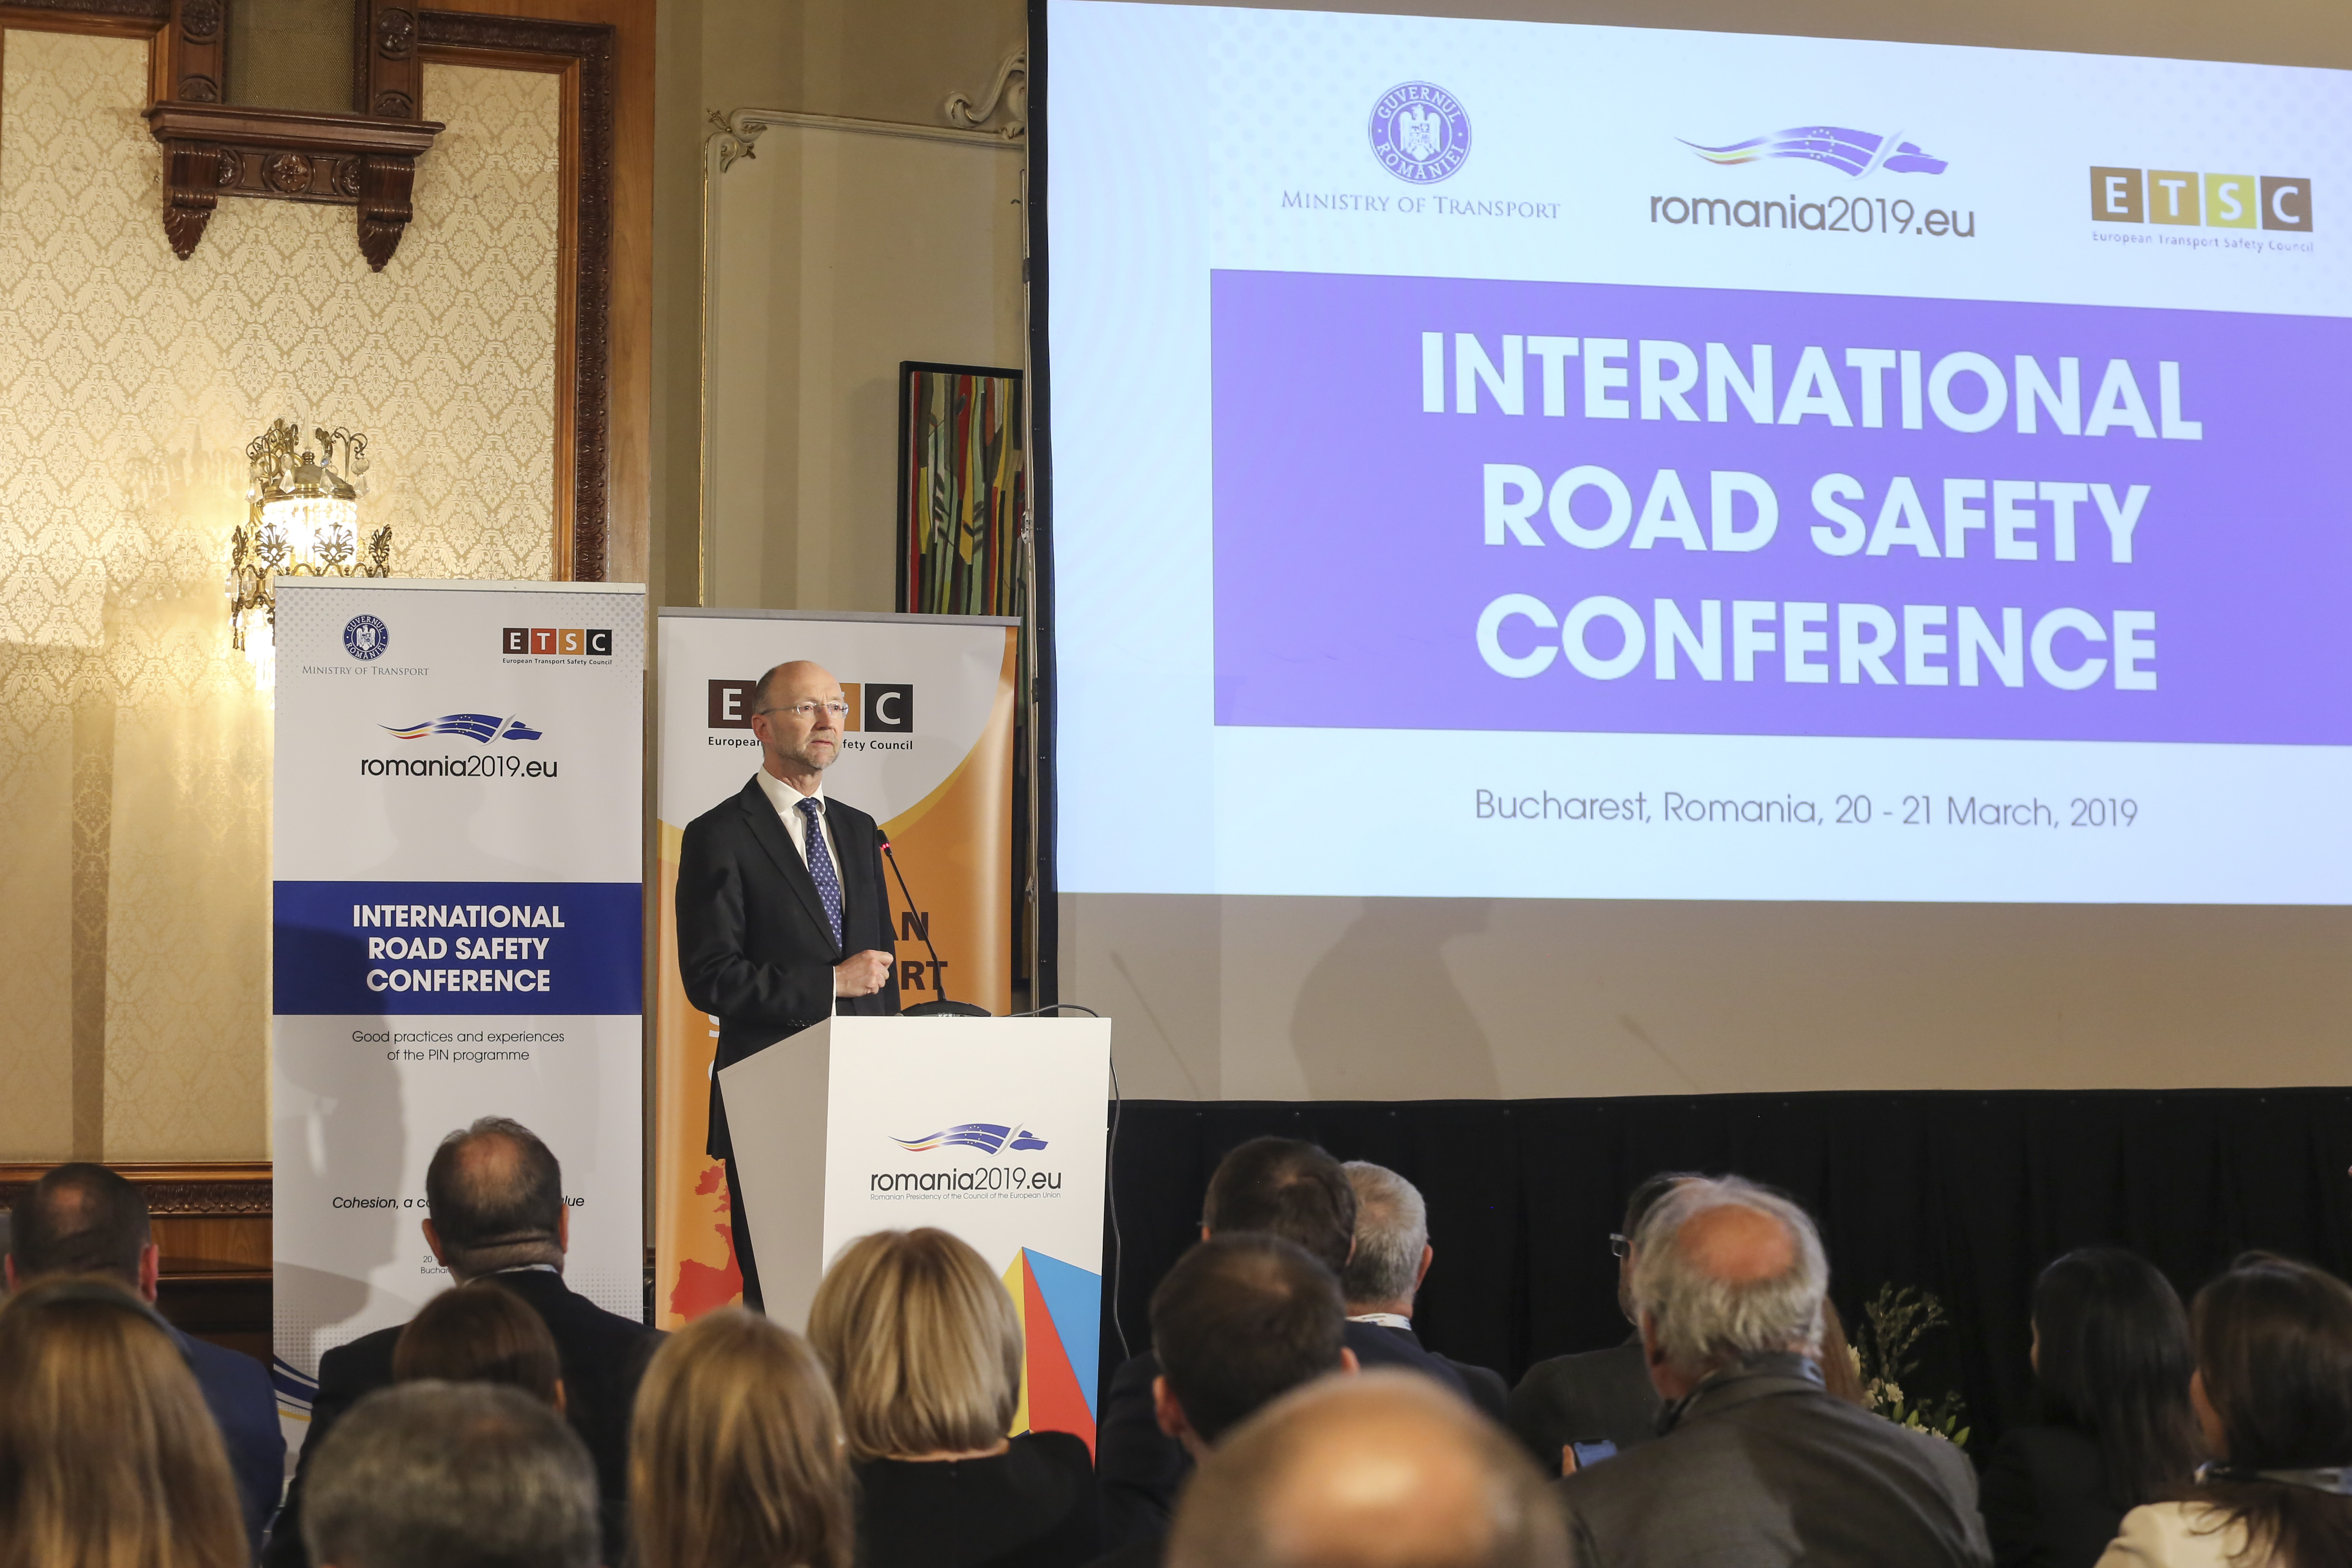 20-21 March 2019, International Road Safety Conference